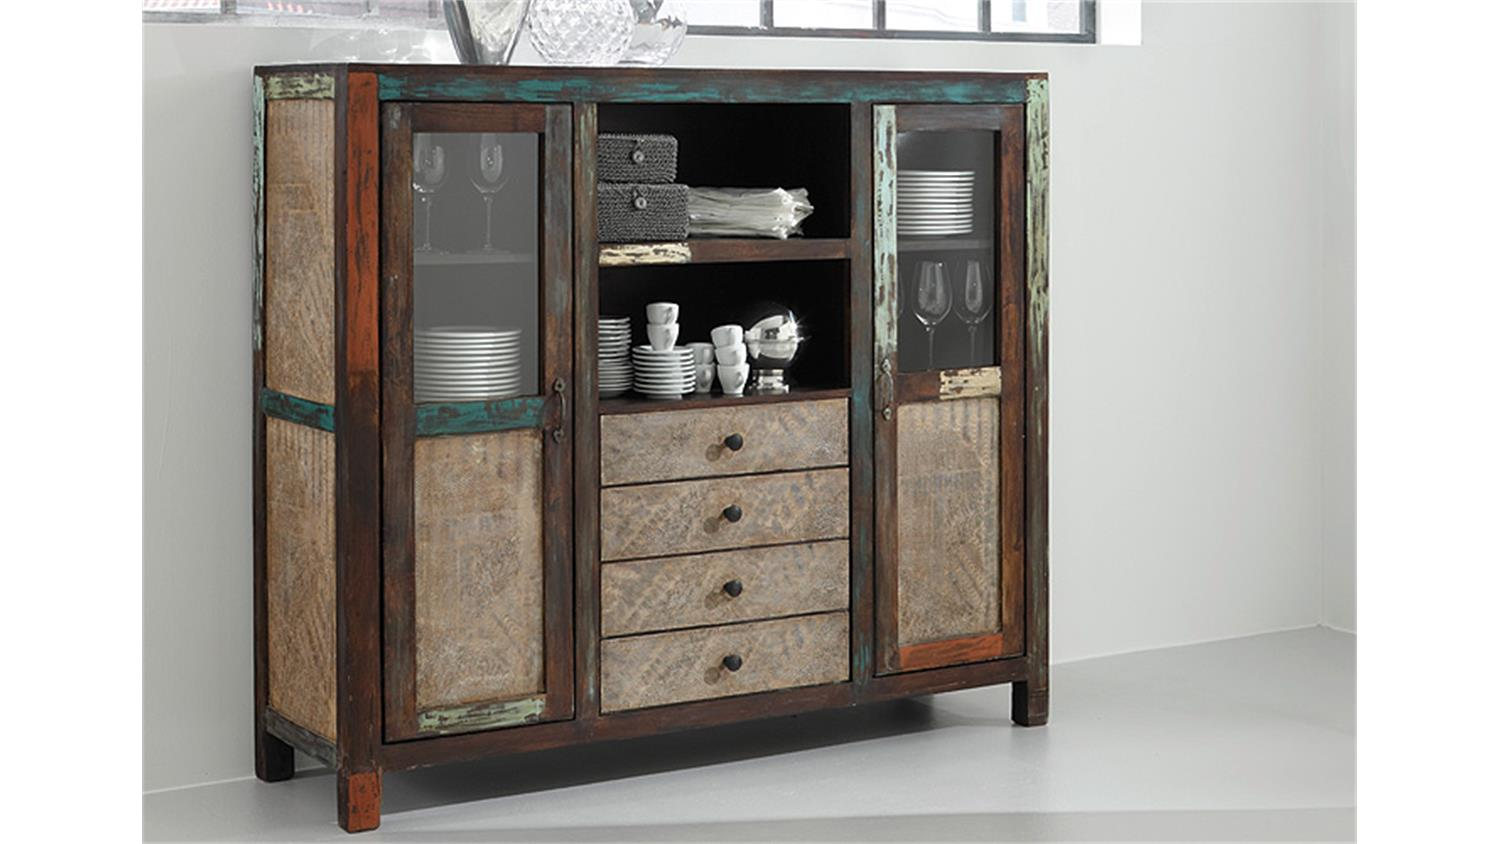 Sessel Rolf Benz Freistil Highboard Goa Von Wolf Möbel In Massivholz Mango